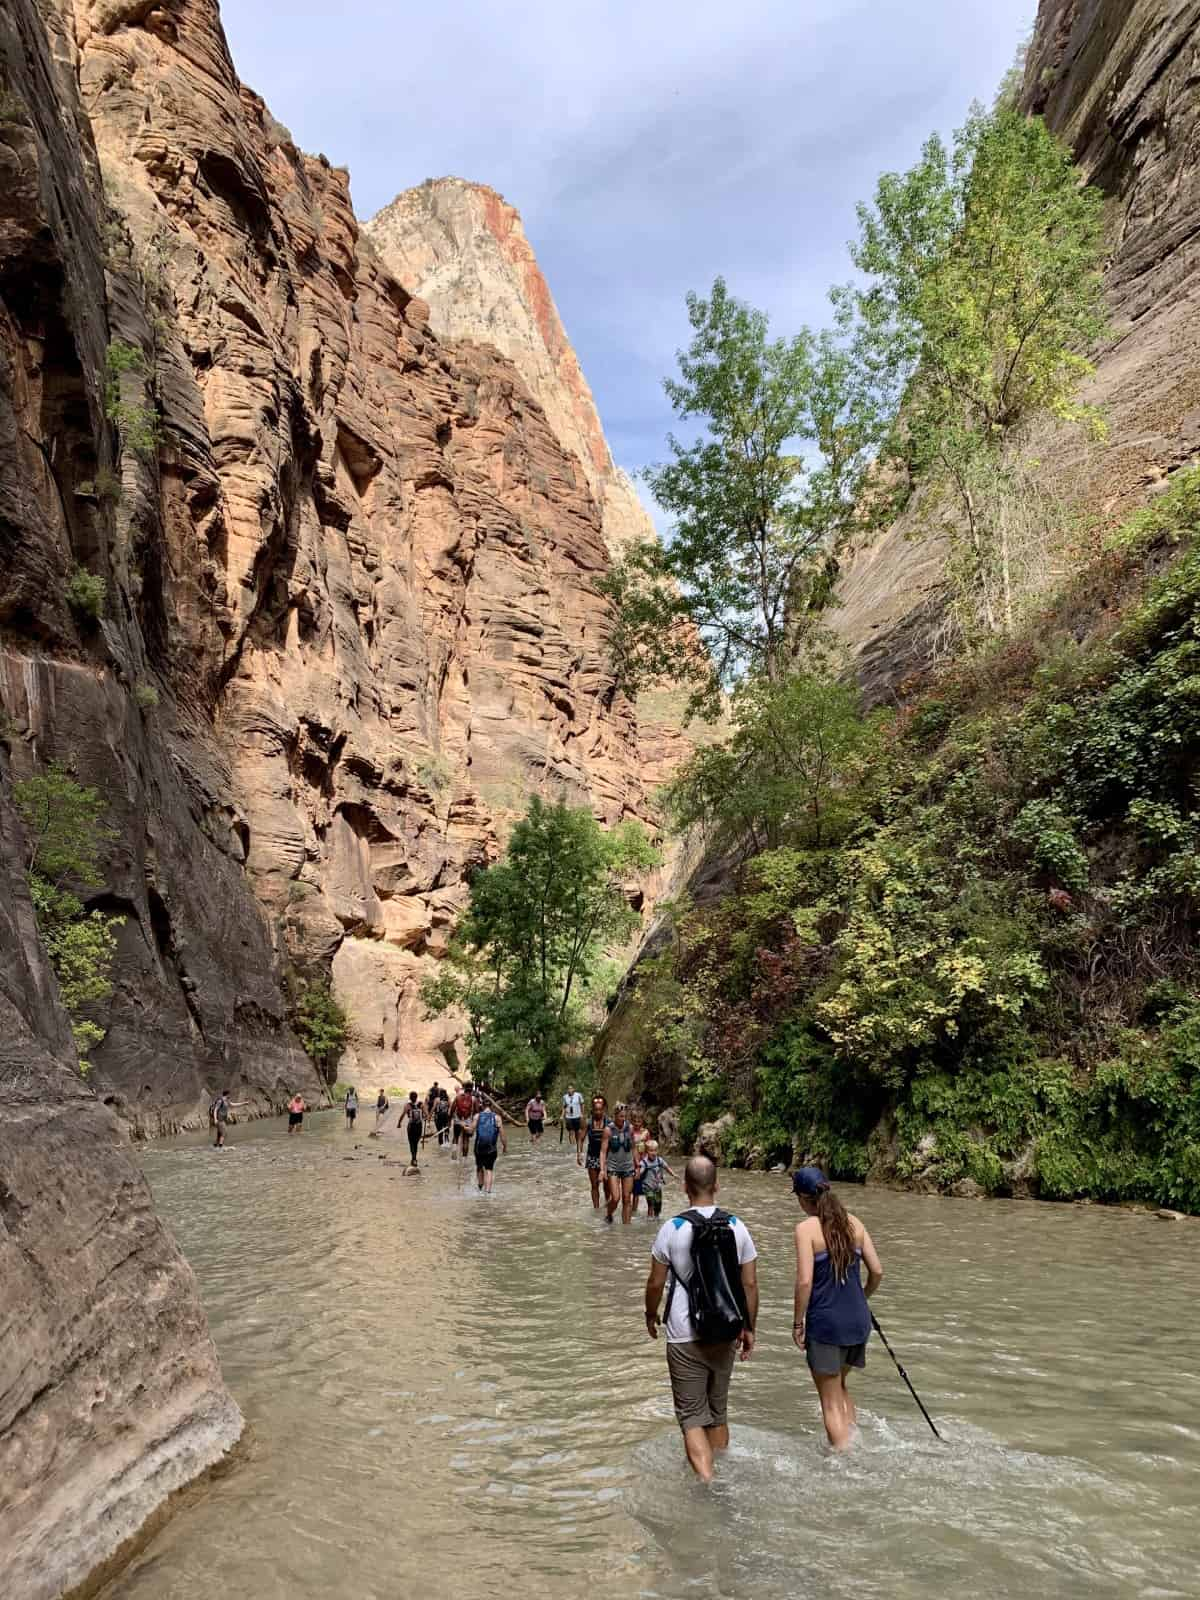 How To Plan a Visit to Zion National Park During COVID   If you're wanting to visit Zion during COVID, it's important to plan ahead and know about the changes and restrictions. What you need to know about Zion shuttle tickets, shuttle stop closures, alternative ways to visit, and more! What to do in Zion. #nps #zion #covidrestrictions #traveltips #zionnationalpark